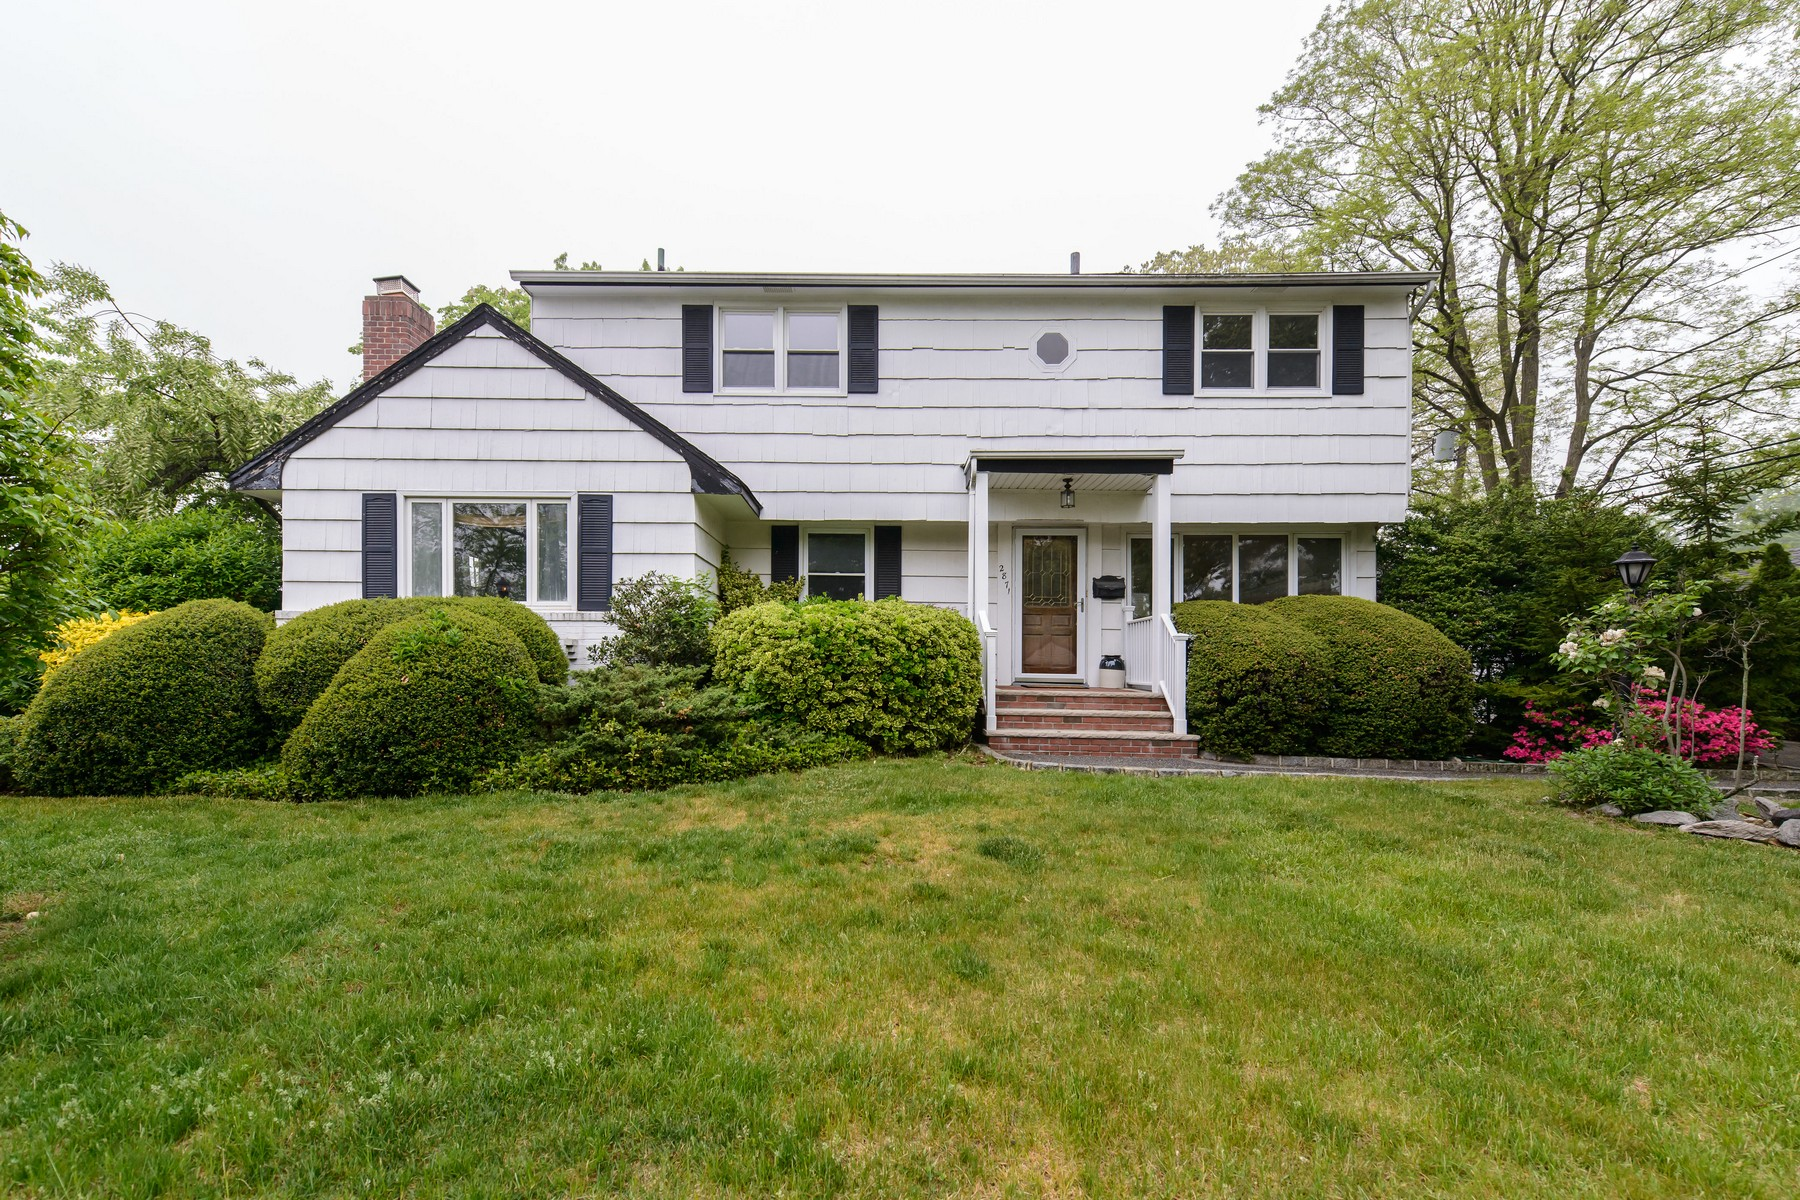 Single Family Home for Sale at Exp Cape 2871 Campbell Ave Wantagh, New York 11793 United States